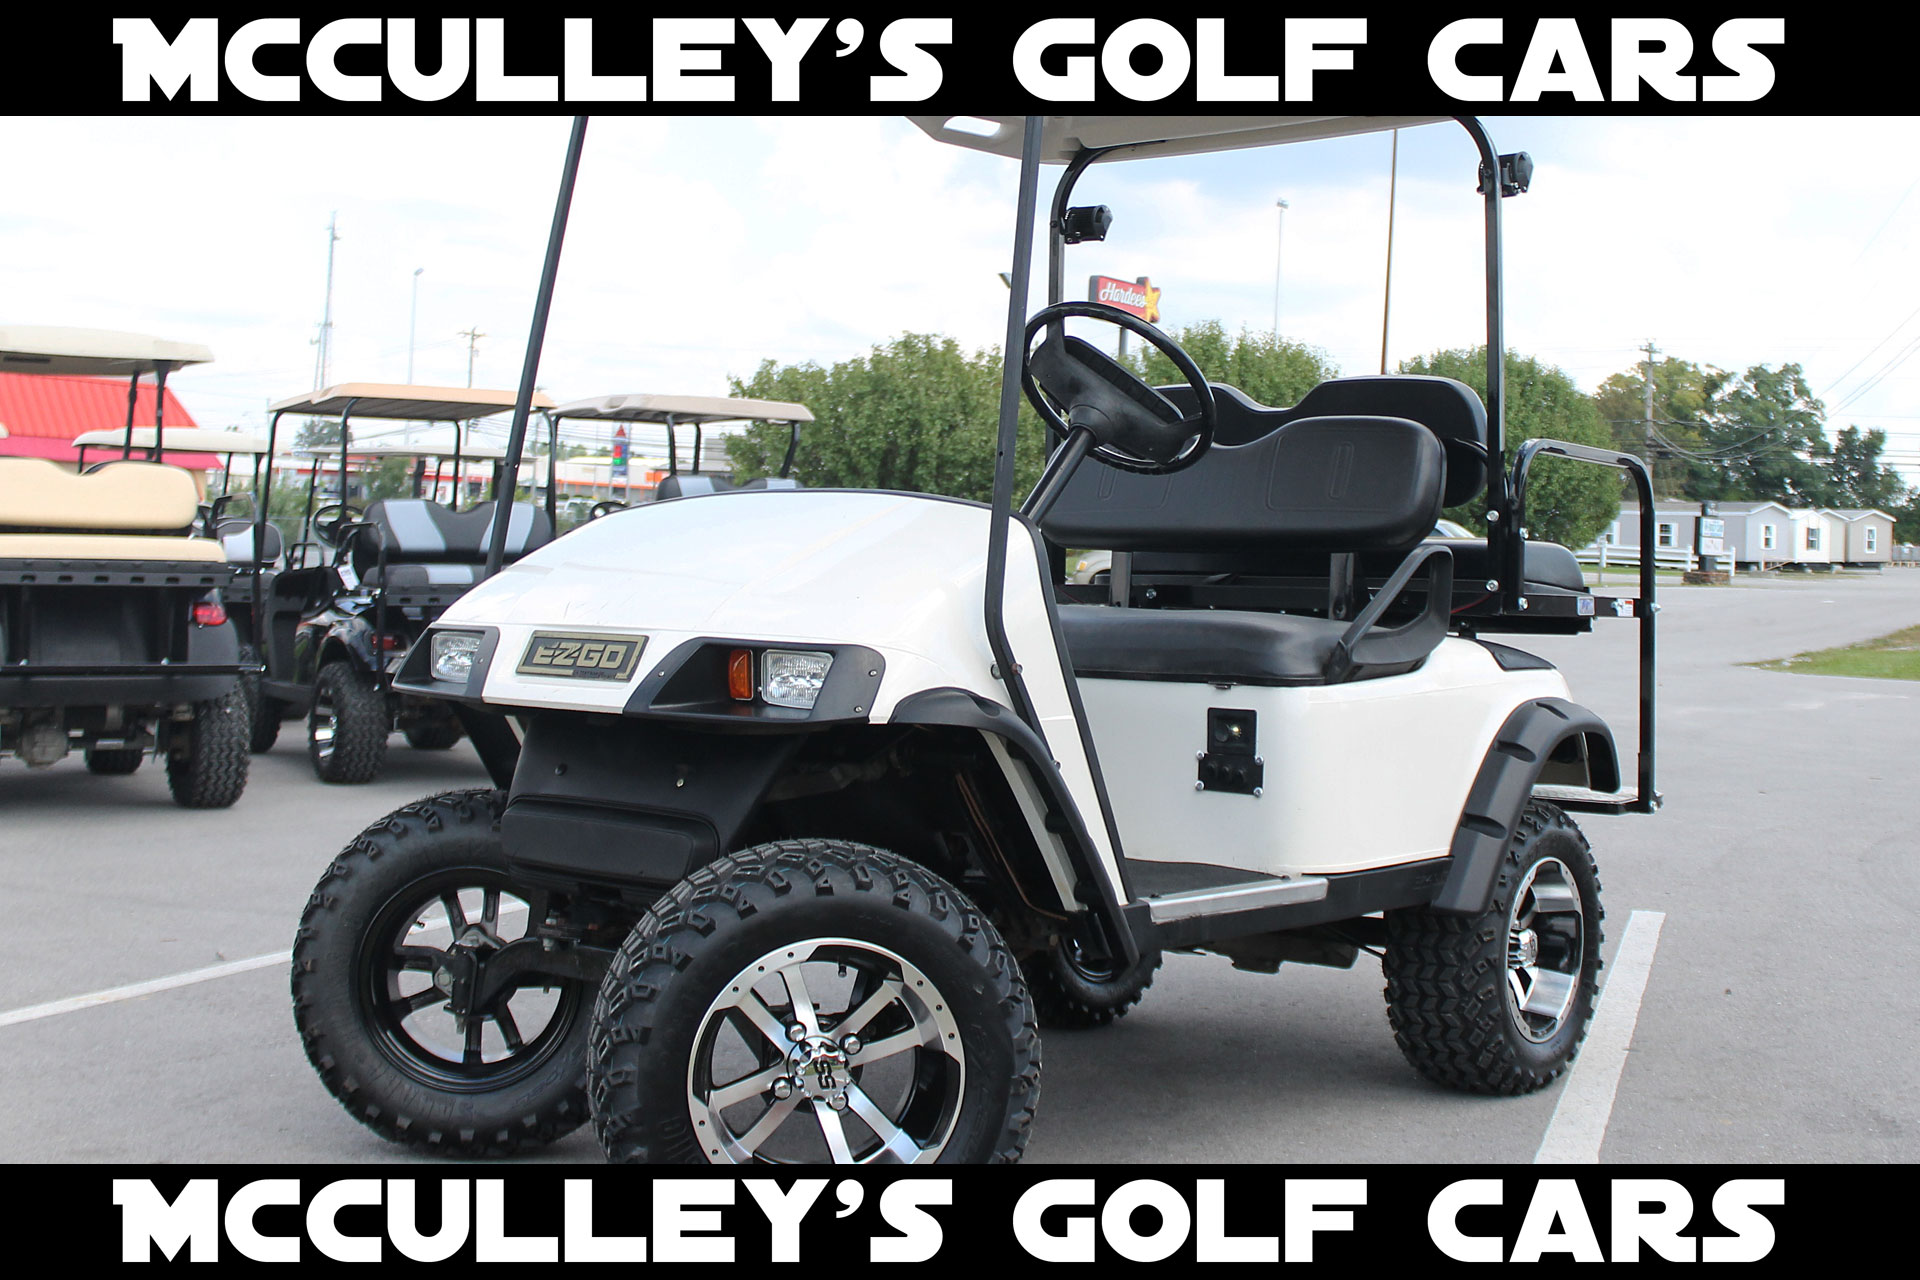 Lifted Gas Golf Cart EZGO TXT – McCulley's Golf Cars on phlebotomy carts, club car utility carts, lifted club cart, lifted trailers, wide wheels for carts, wicked carts, motorized lift carts, lift kits for club carts, jakes carts, lifted atvs, radical carts, columbia carts, eagle custom carts, ez go flatbed carts, lifted four wheelers, street-legal utility carts, king of carts, homemade fishing carts, heavy duty four wheel carts,